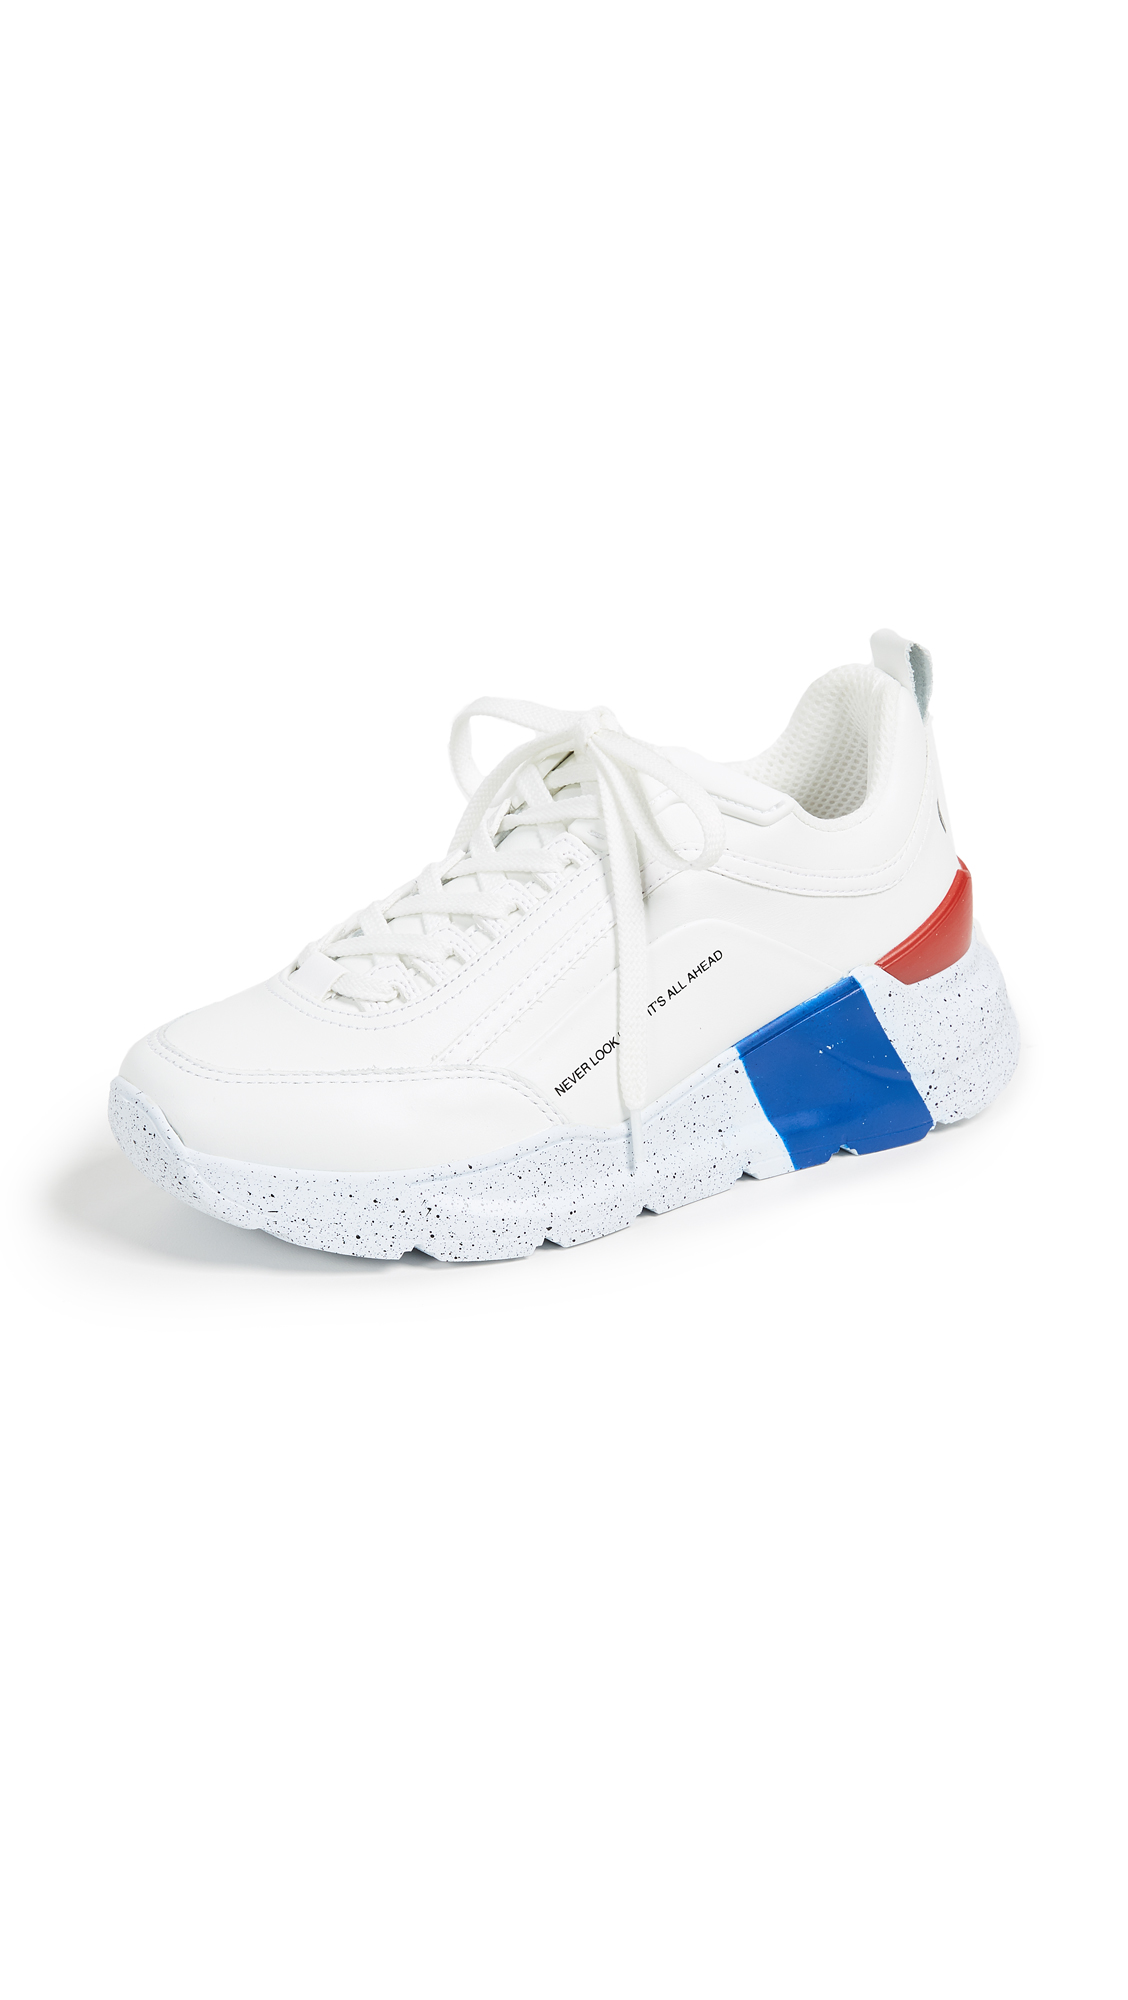 MSGM Hiking Trainer Sneakers - Optical White/Red/Blue